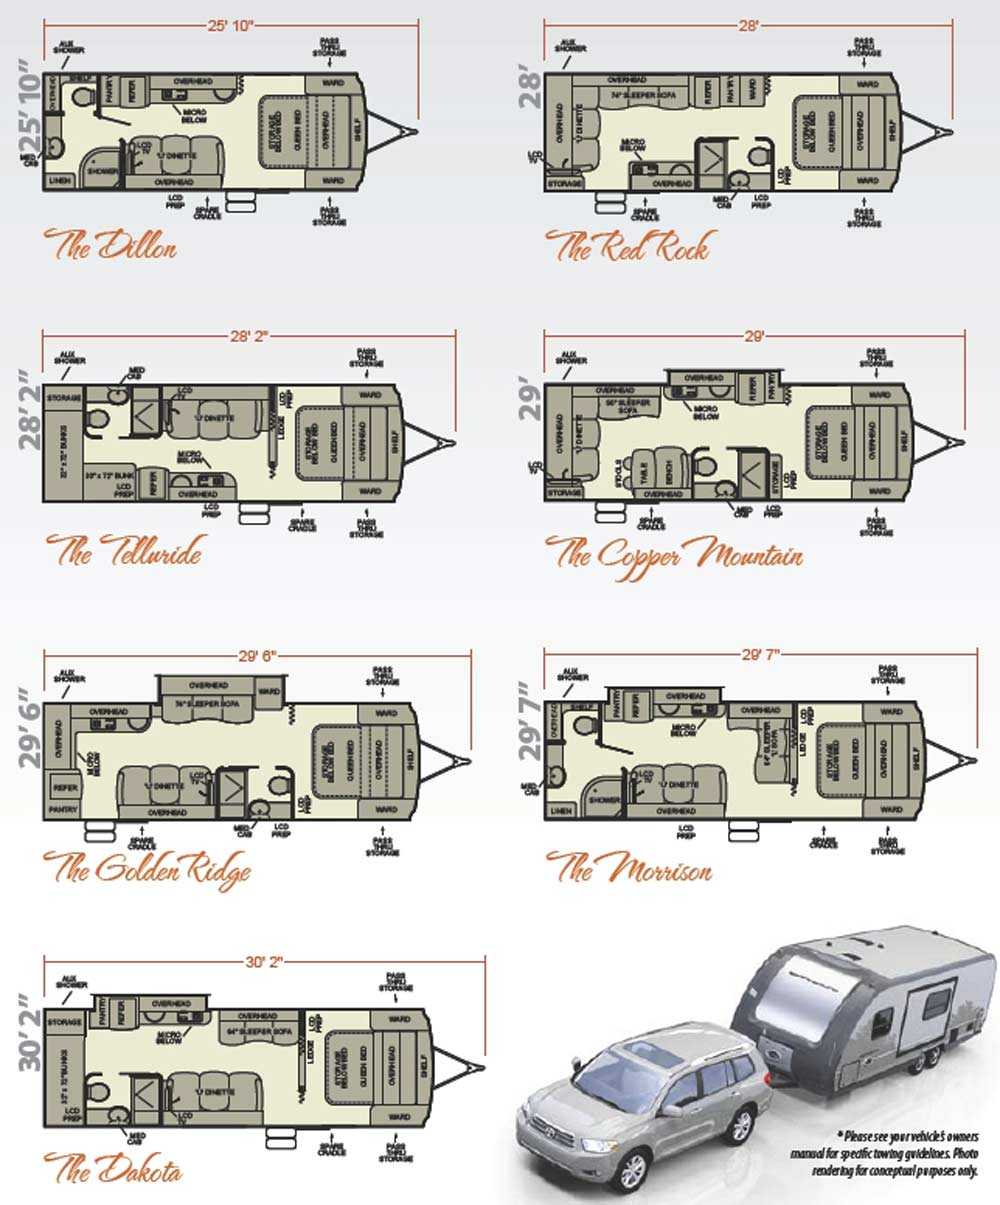 travel trailer floorplans unique house plans